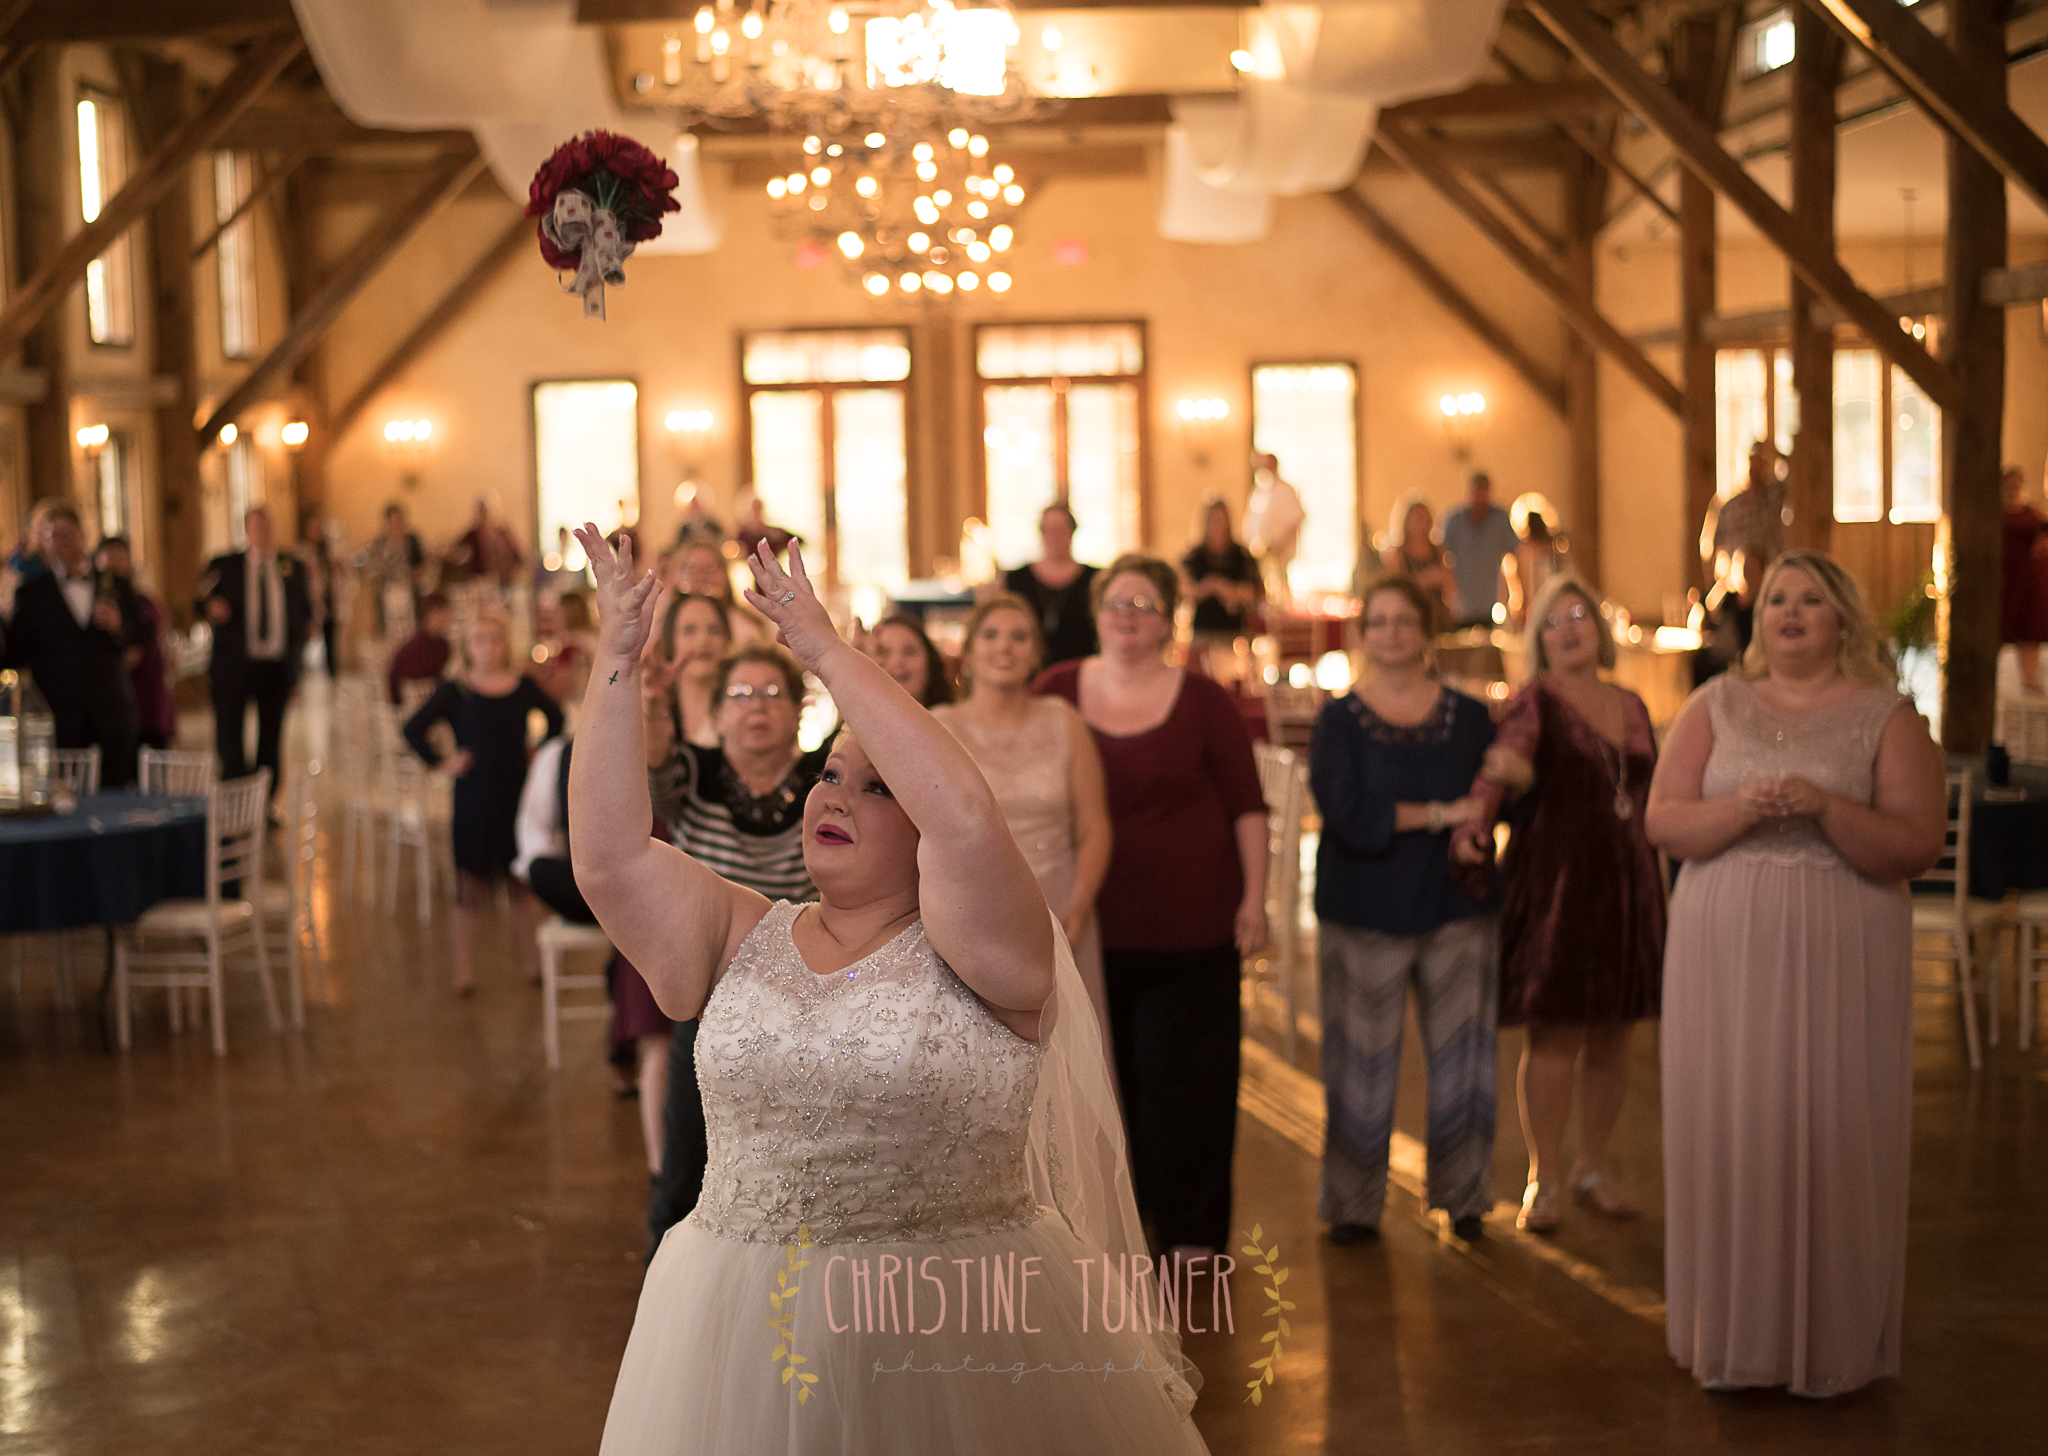 Duell Wedding (53 of 54)